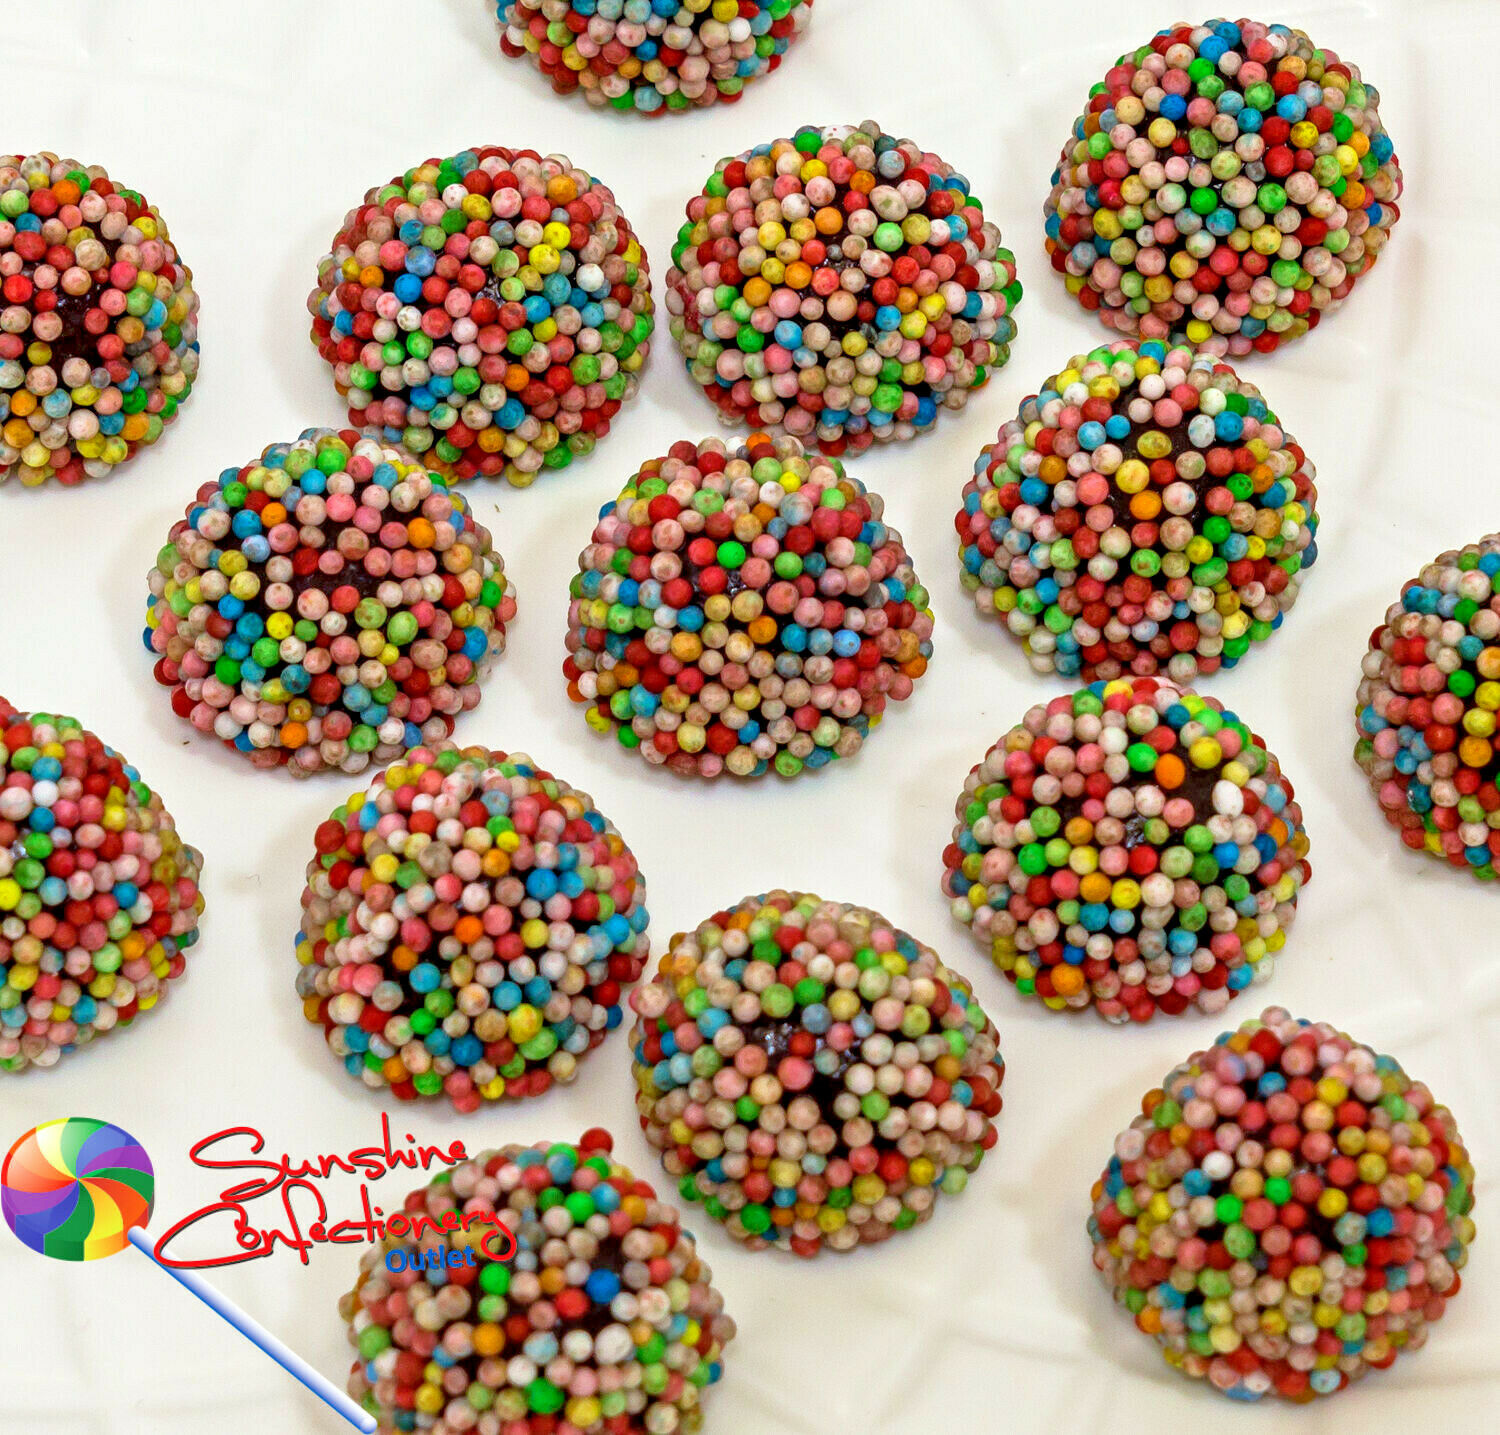 Aniseed Sparkles - 1kg -  Bulk Aniseed Jelly Lollies, Made in Australia